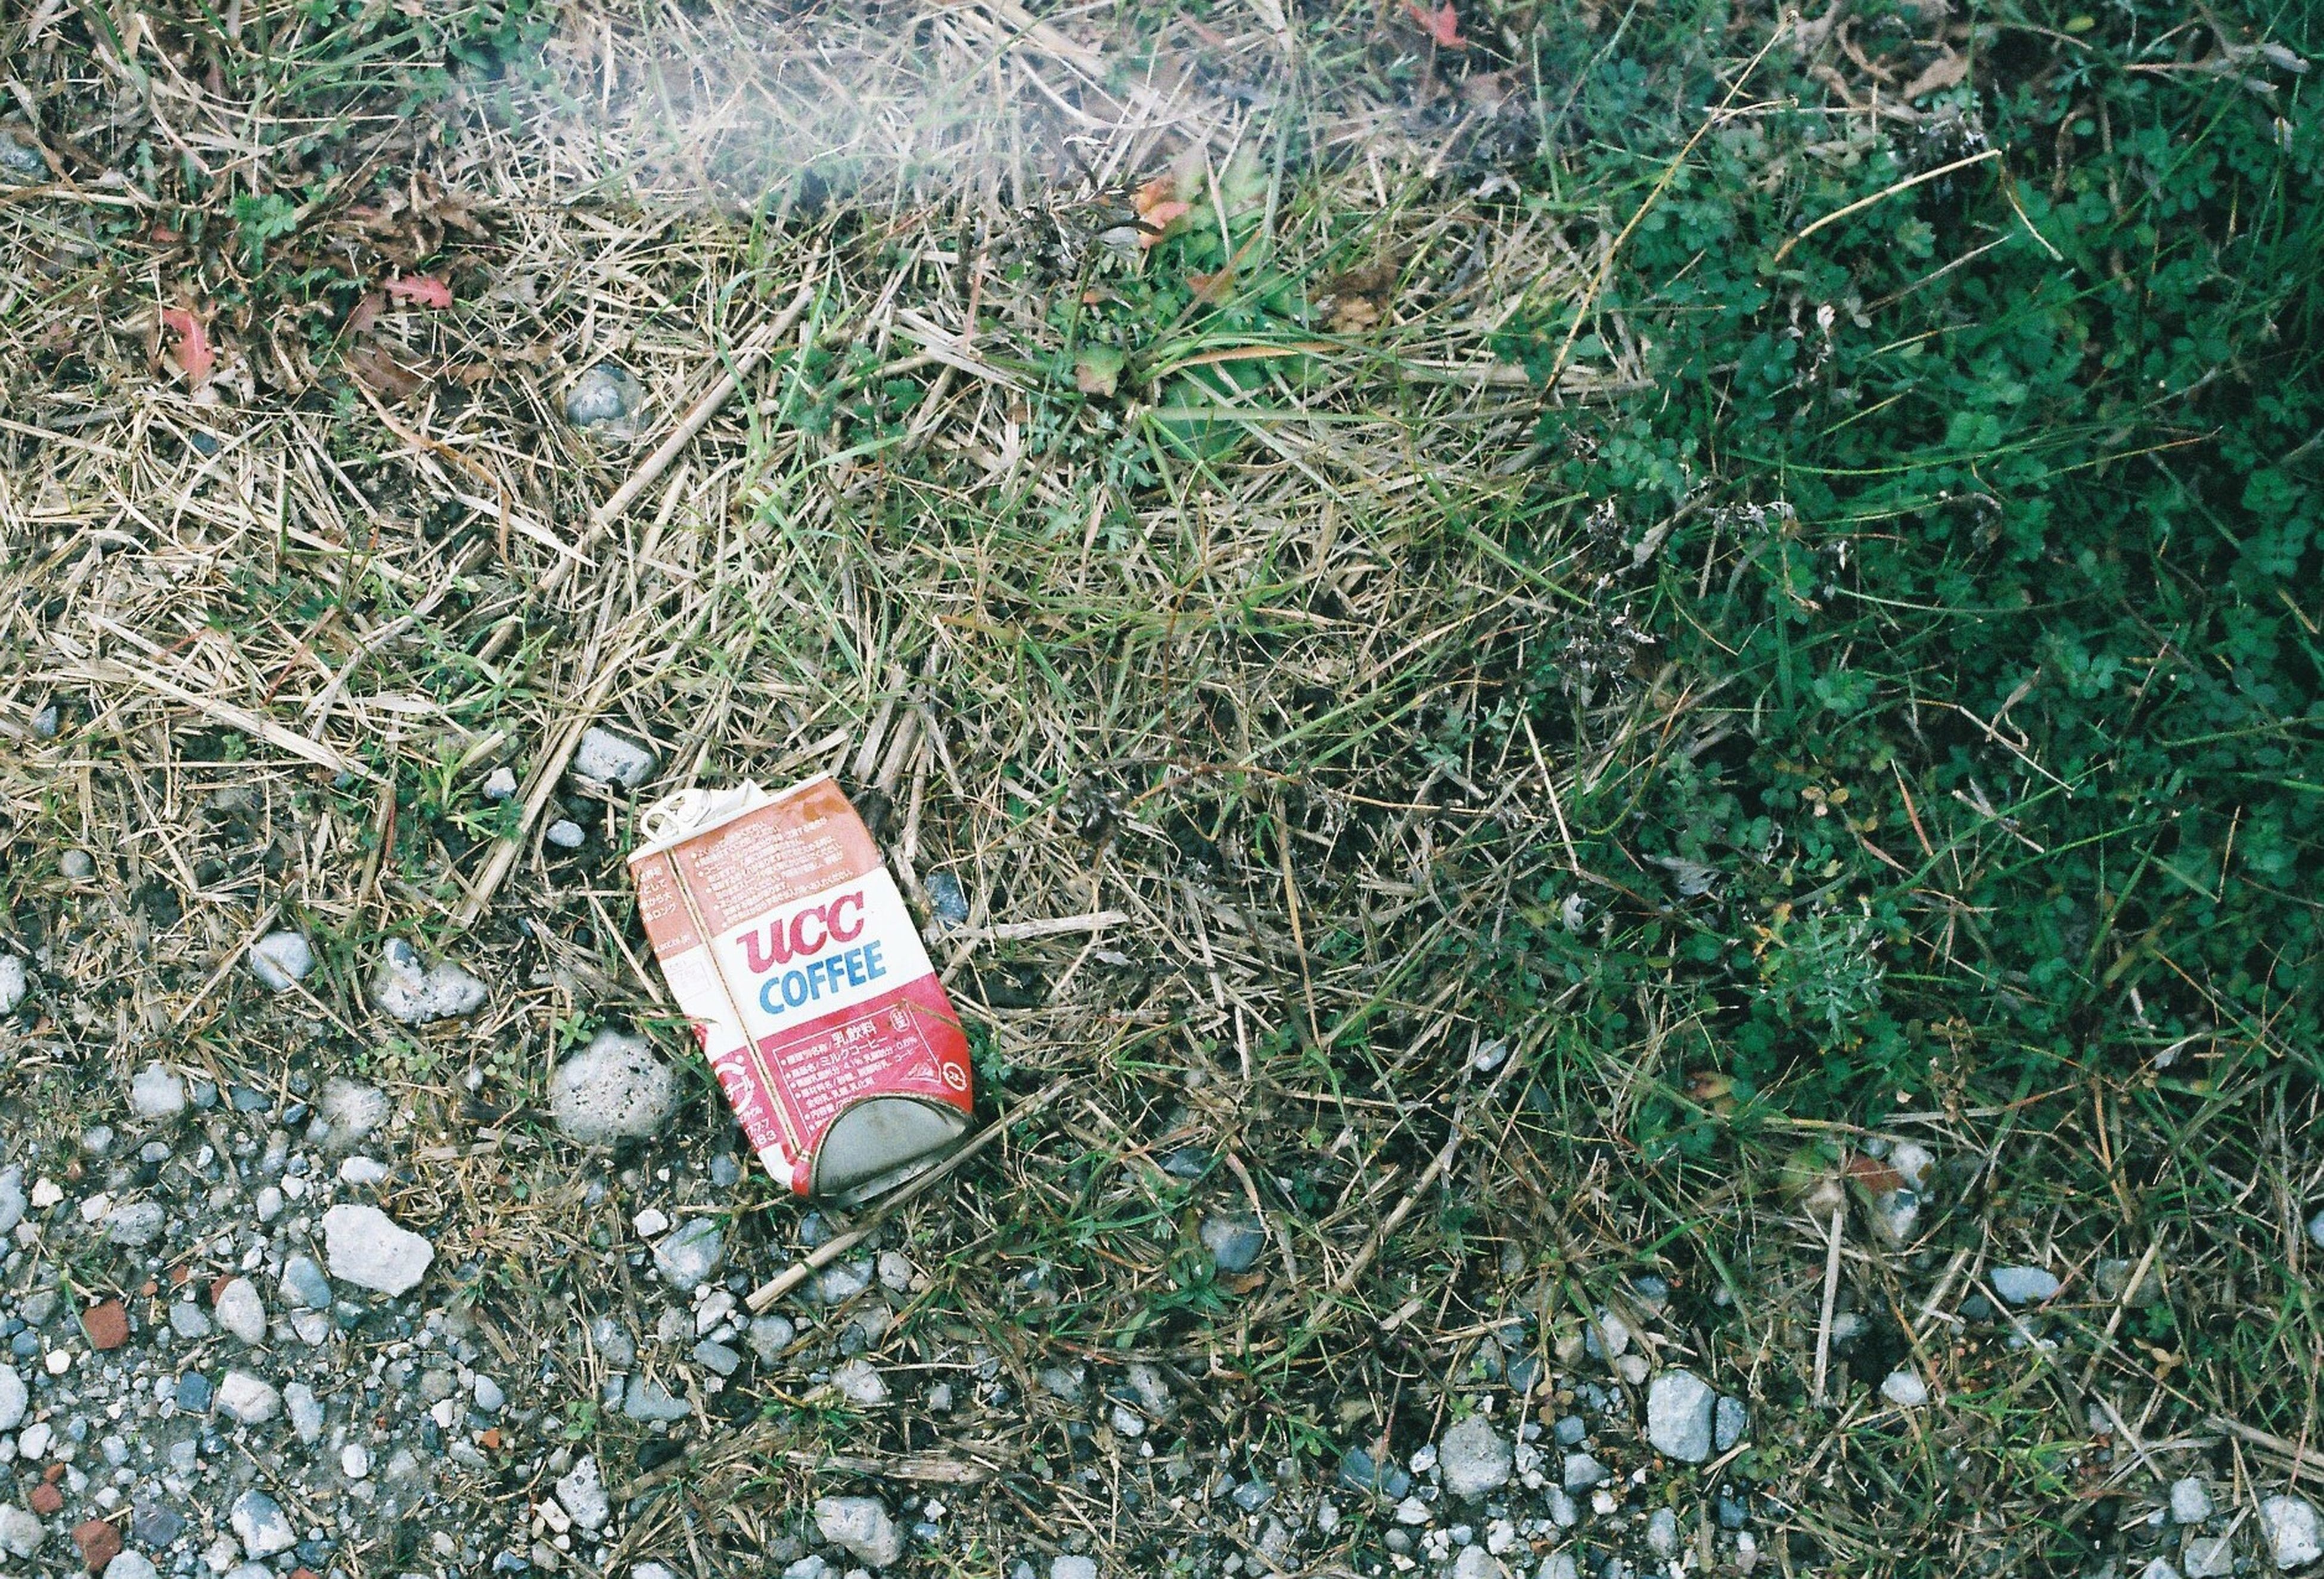 grass, high angle view, field, text, communication, western script, plant, grassy, day, red, growth, ground, abandoned, outdoors, no people, nature, leaf, green color, close-up, warning sign